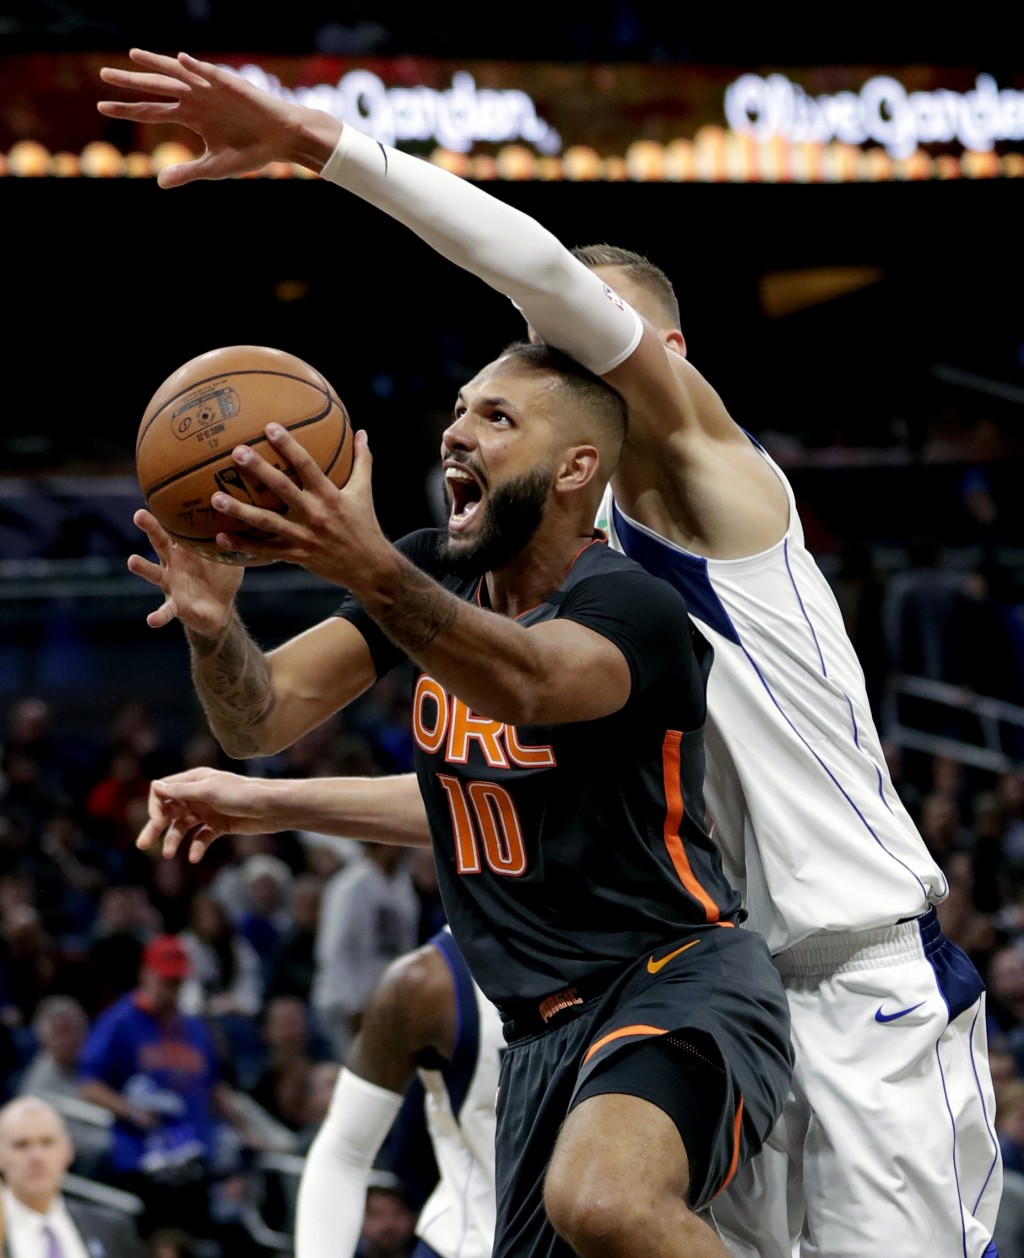 Orlando Magic guard Evan Fournier (10) is fouled by Dallas Mavericks forward Kristaps Porzingis while going up to shoot during the second half of an N...